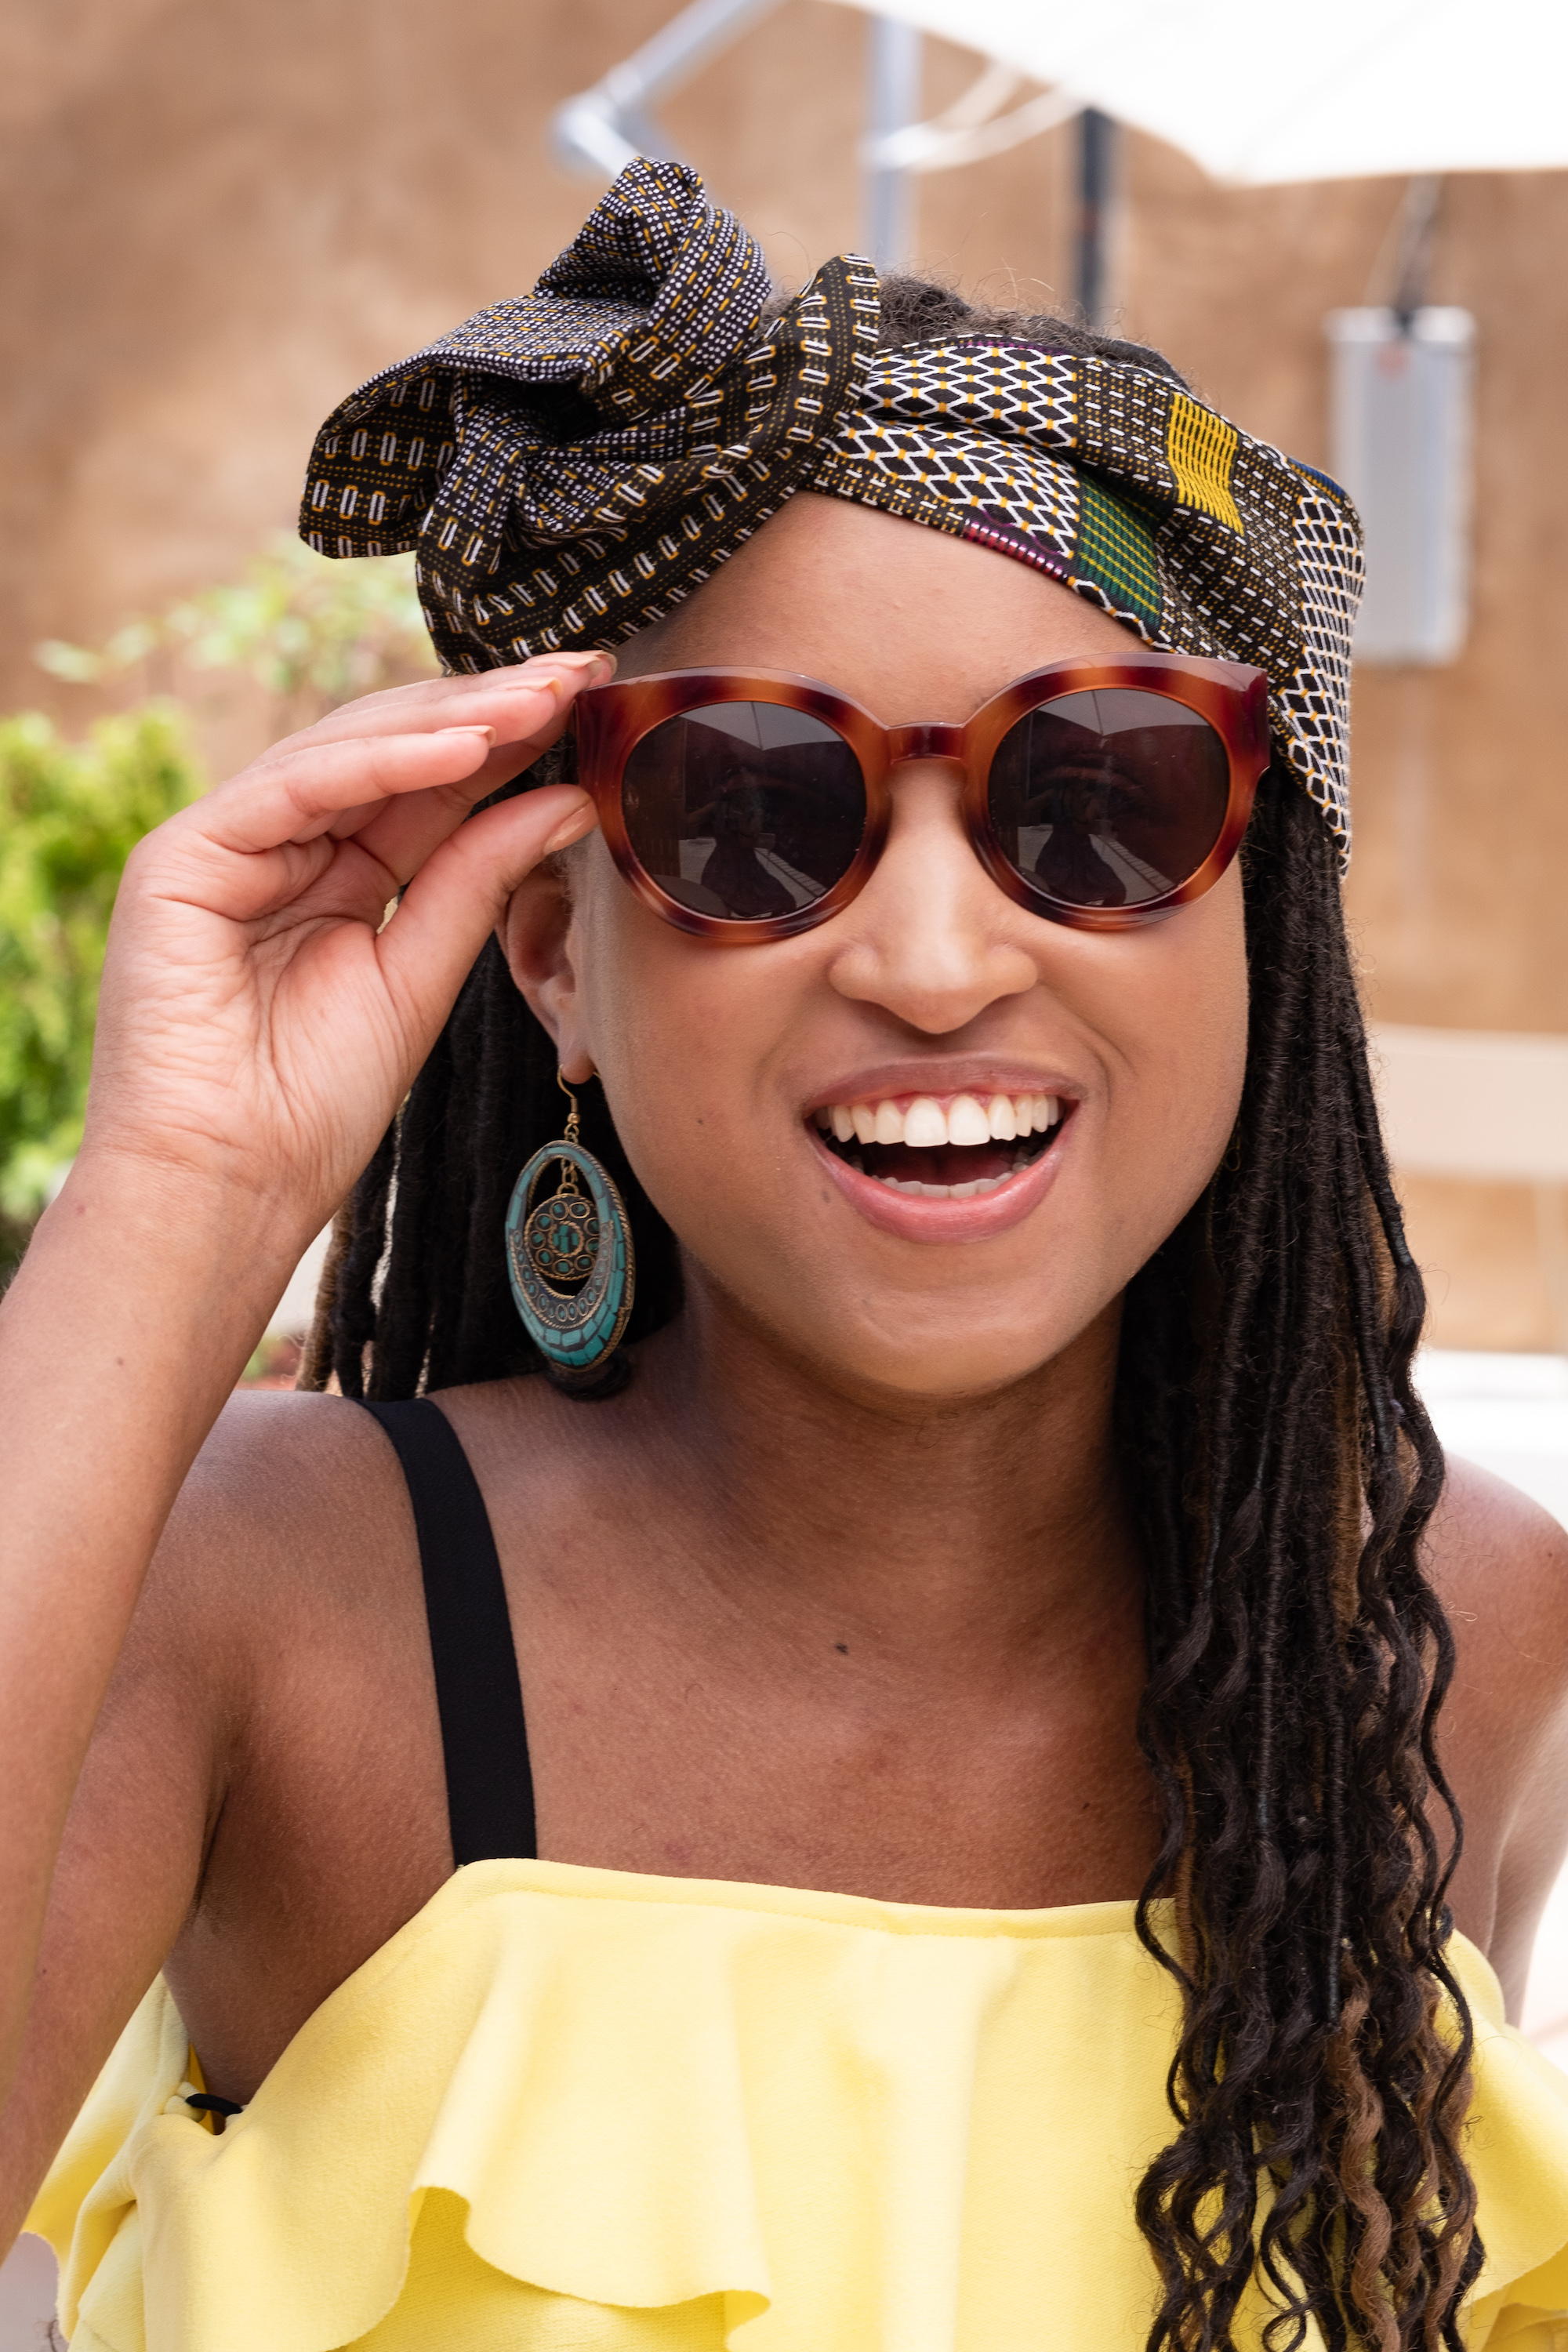 Smiling woman wearing sunglasses and a brown headwrap with blocks of color throughout.